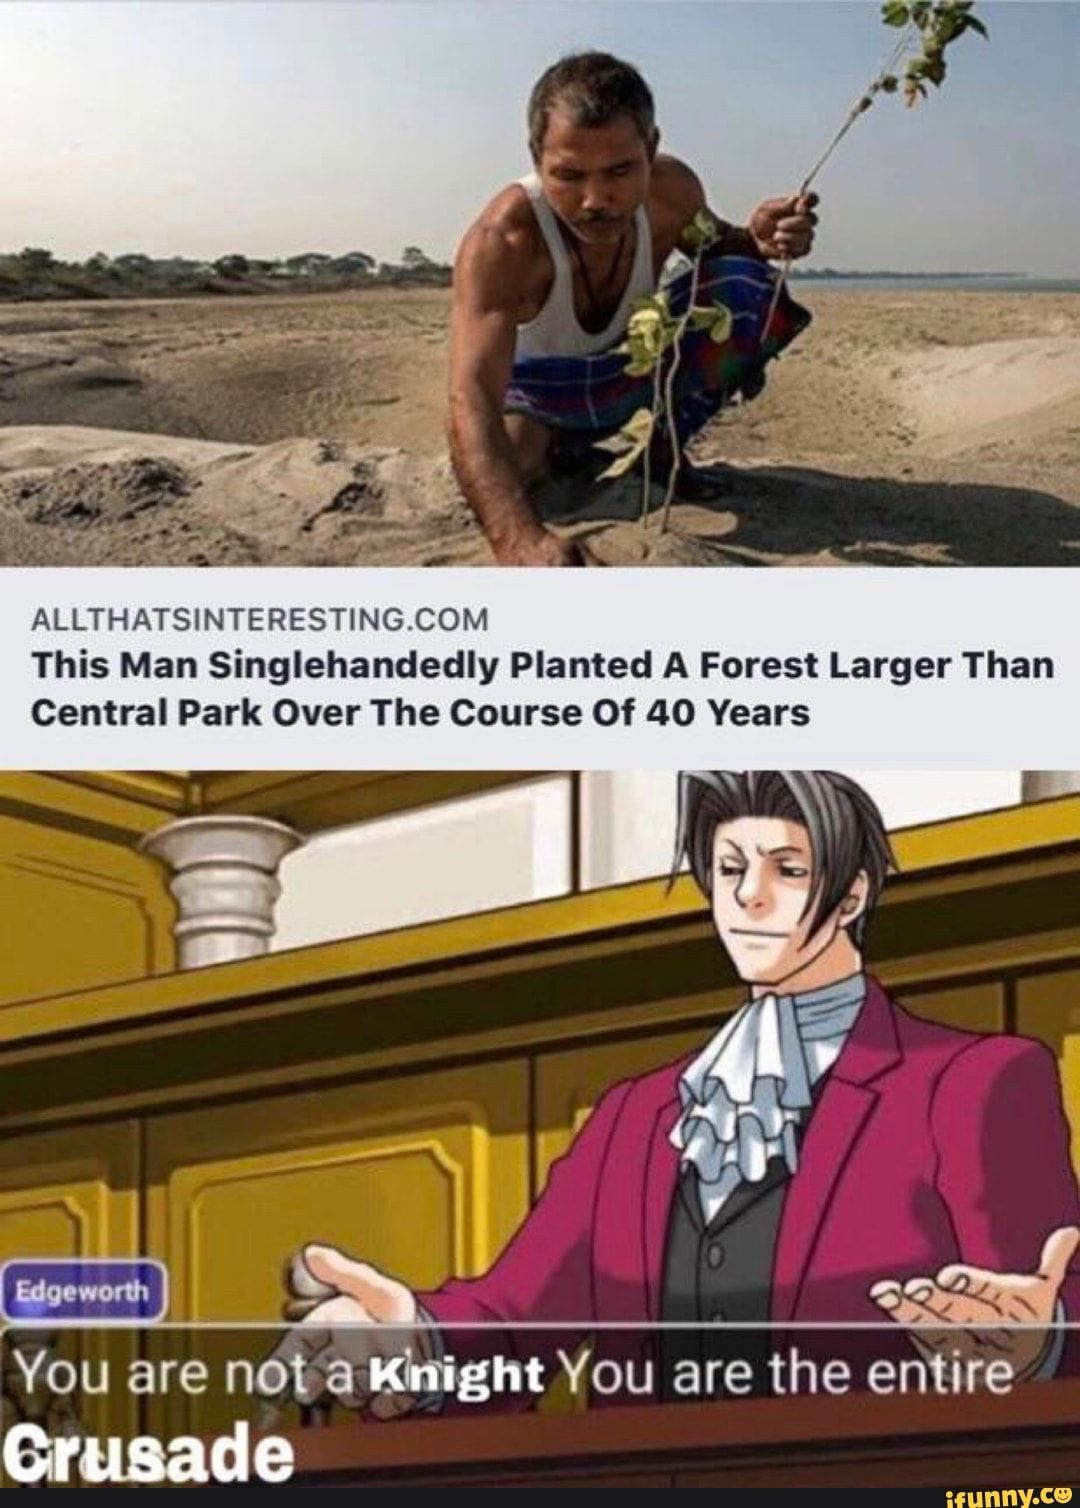 ALLTHATSINTERESTING.COM This Man Singlehandedly Planted A Forest Larger Than Central Park Over The Course Of 40 Years You are nota Knight You are the entire Grusade - )